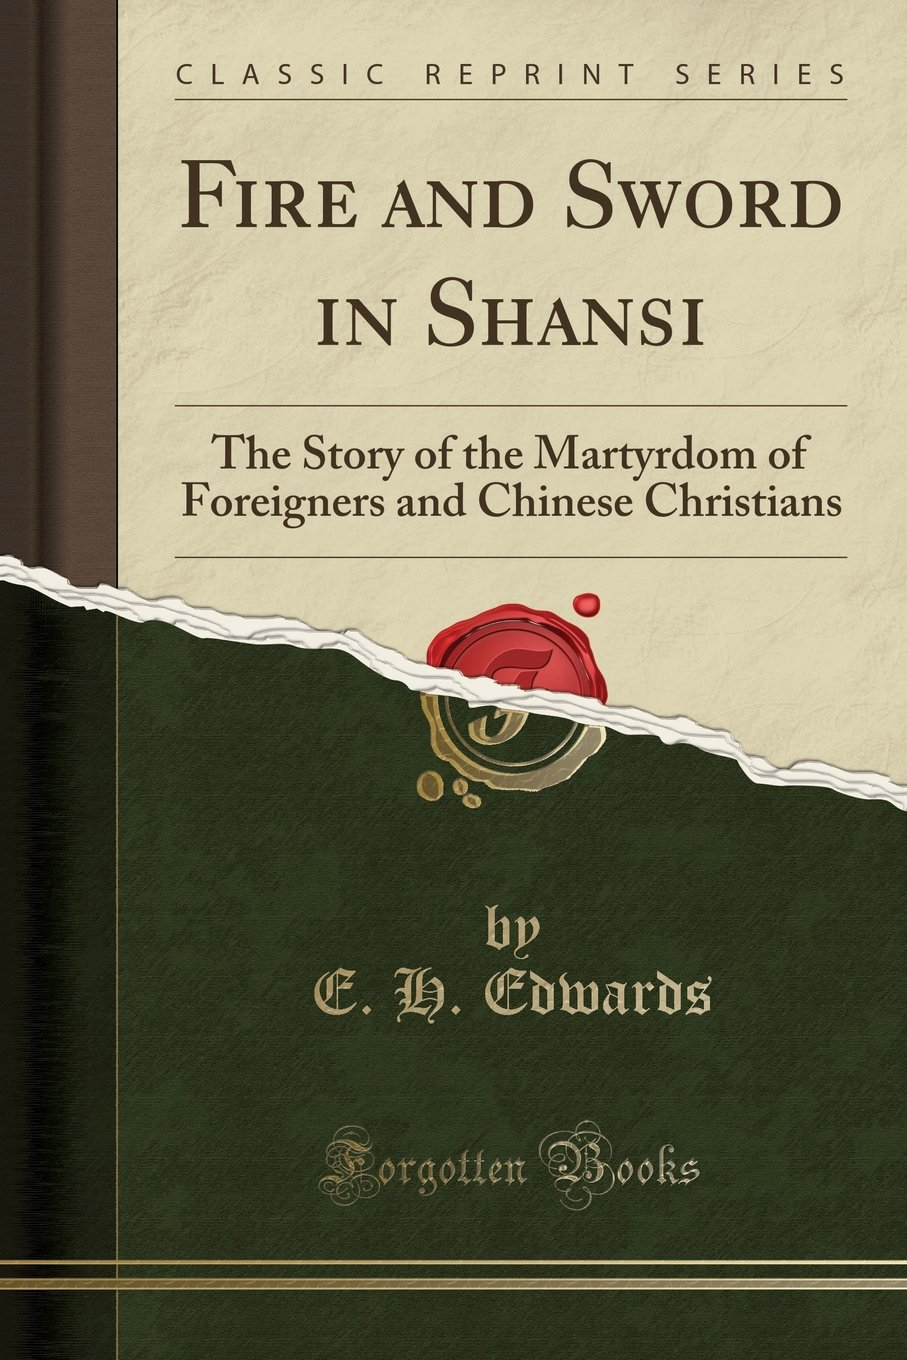 Fire and Sword in Shansi: The Story of the Martyrdom of Foreigners and Chinese Christians (Classic Reprint)